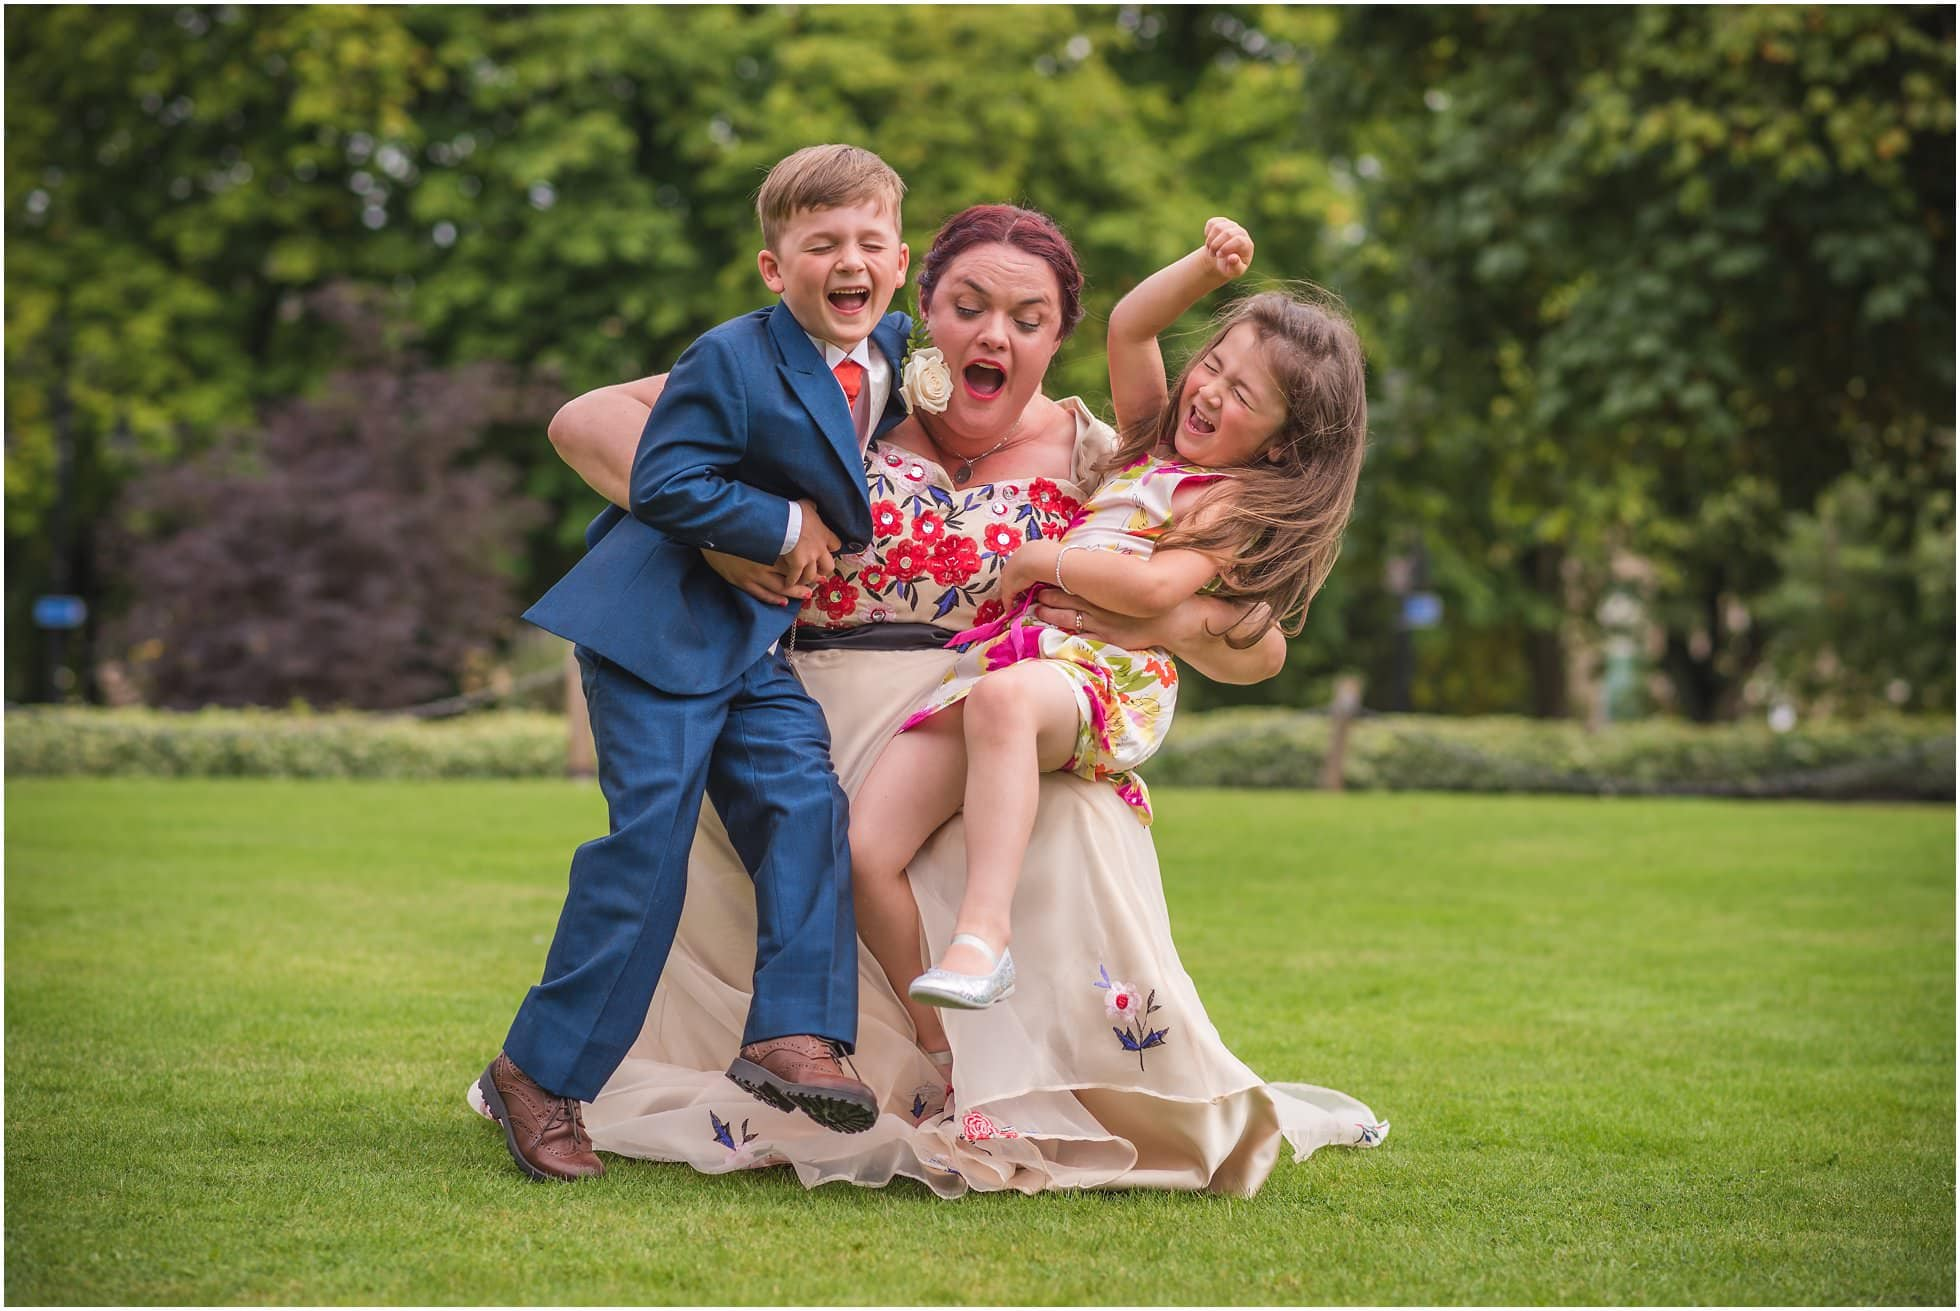 Harrogate bride and her nephew and niece